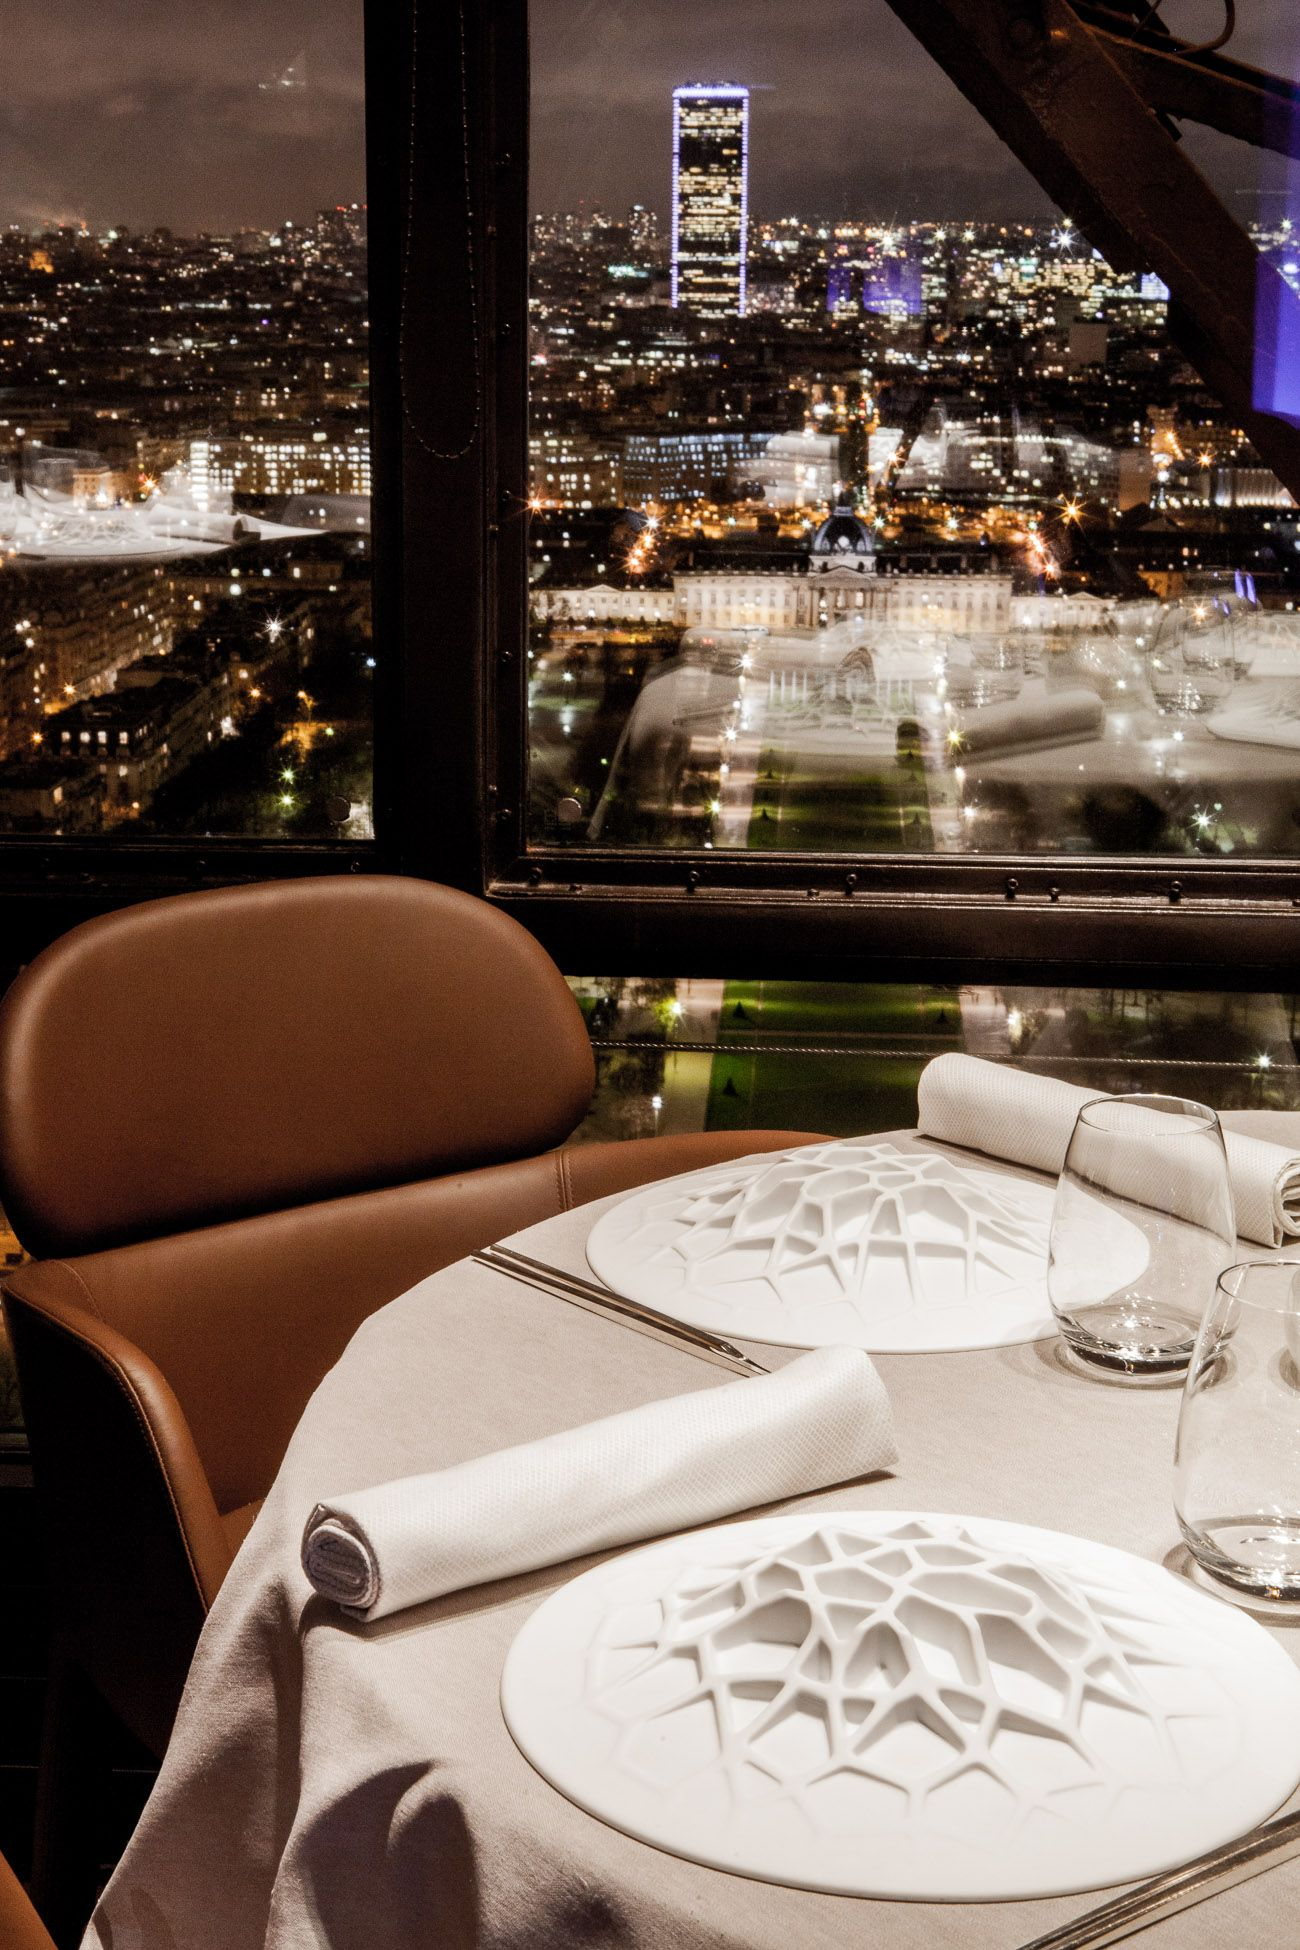 Superb Review: Le Jules Verne Restaurant In The Eiffel Tower   La Jolla Mom